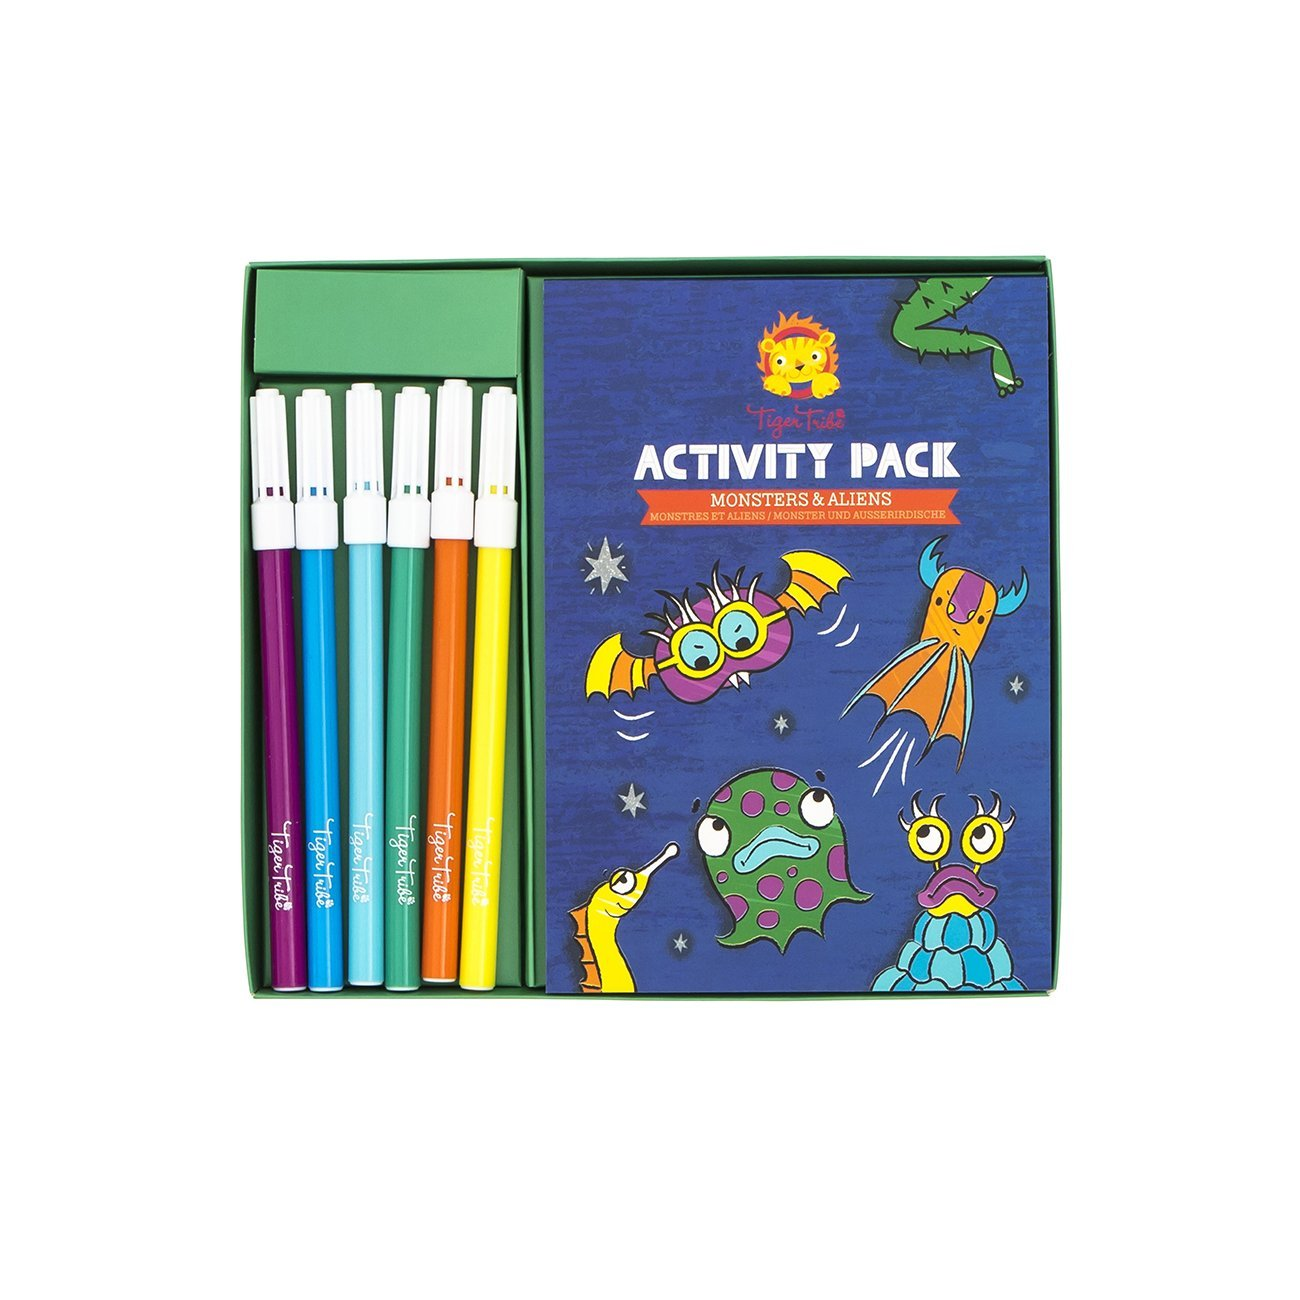 Activity Pack - Monsters and Aliens - Tiger Tribe - Hugs For Kids